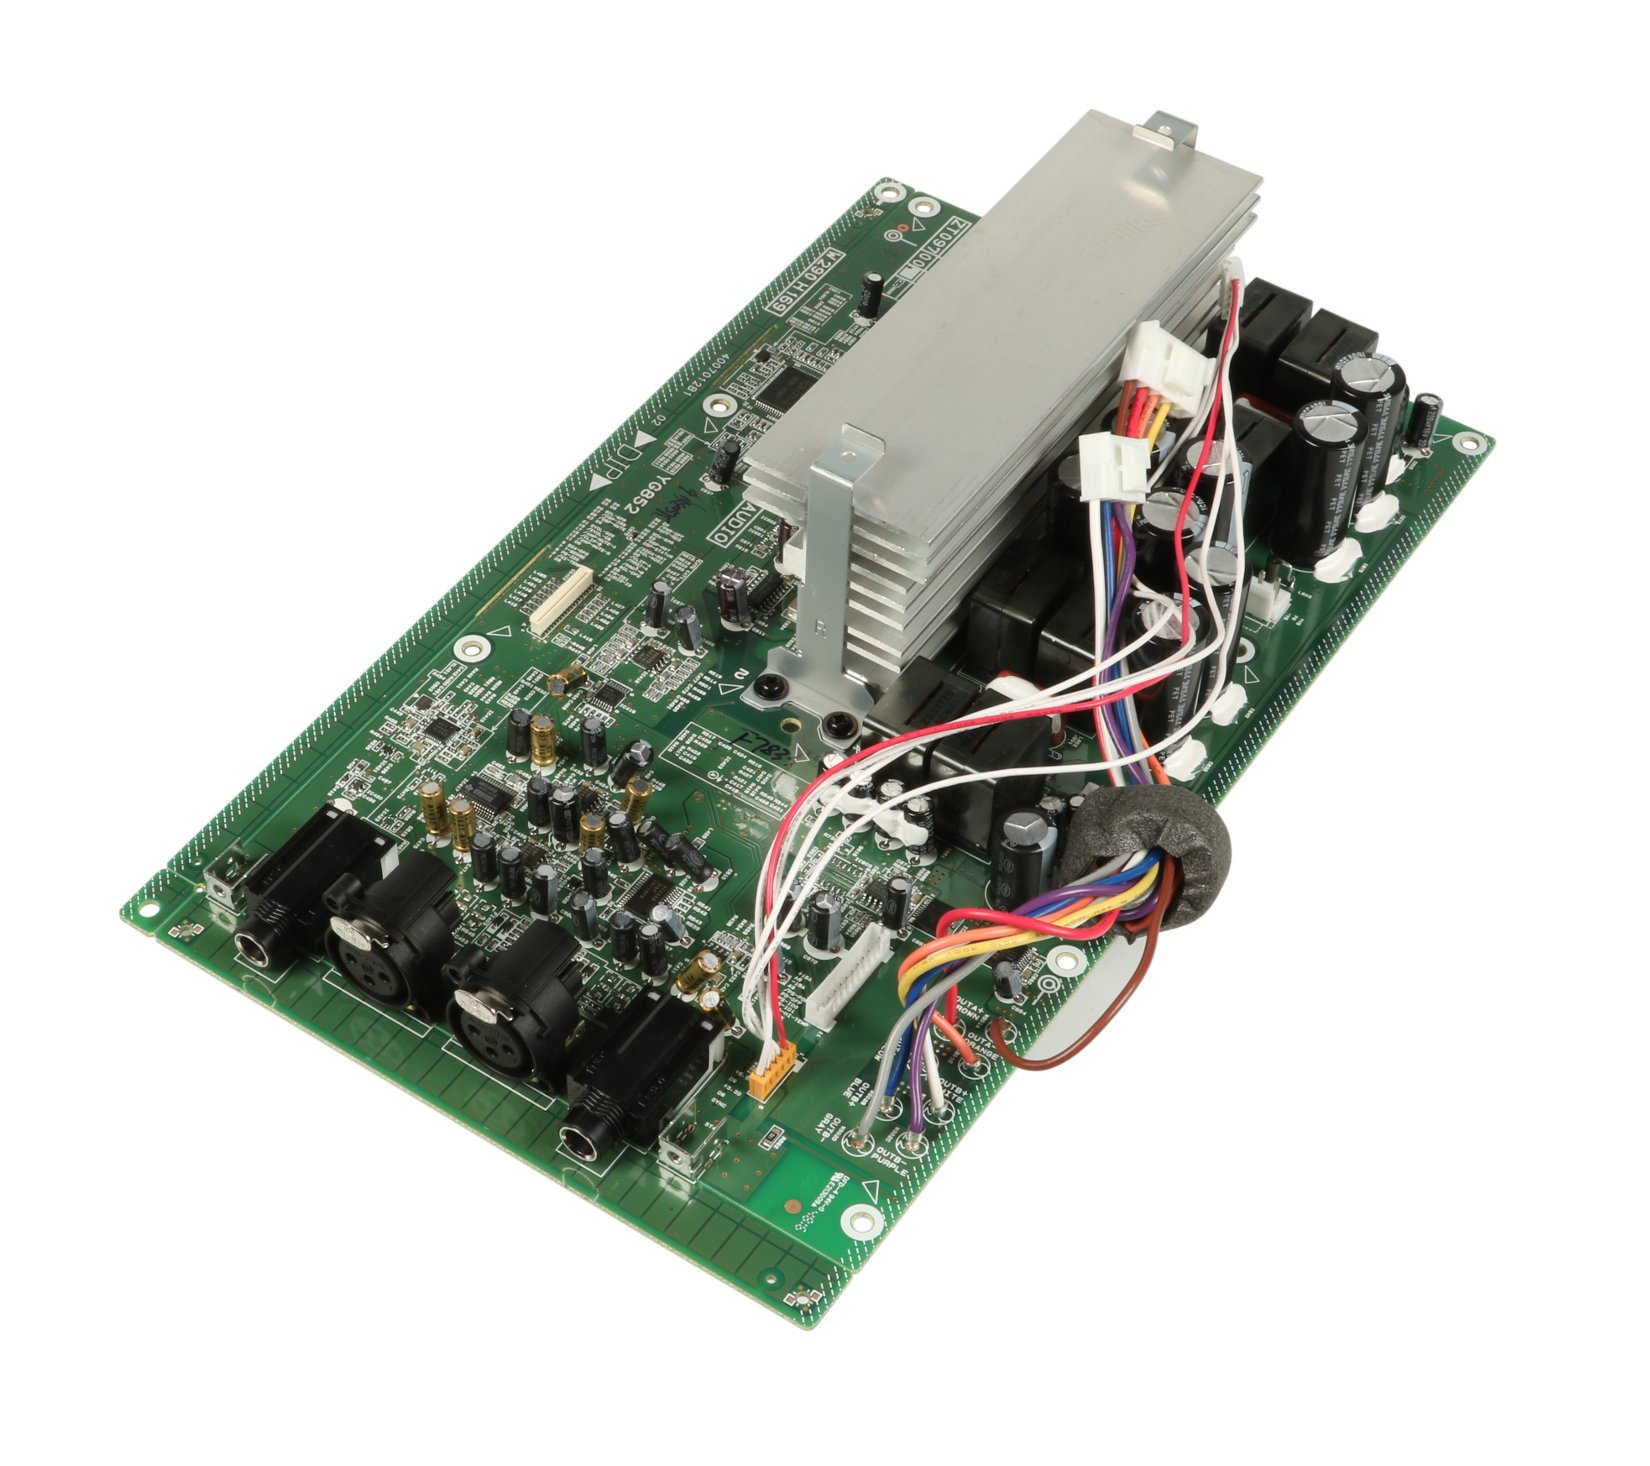 Audio Pcb Assembly For Px10 By Yamaha Zt096600 Full Compass Systems Printed Circuit Board